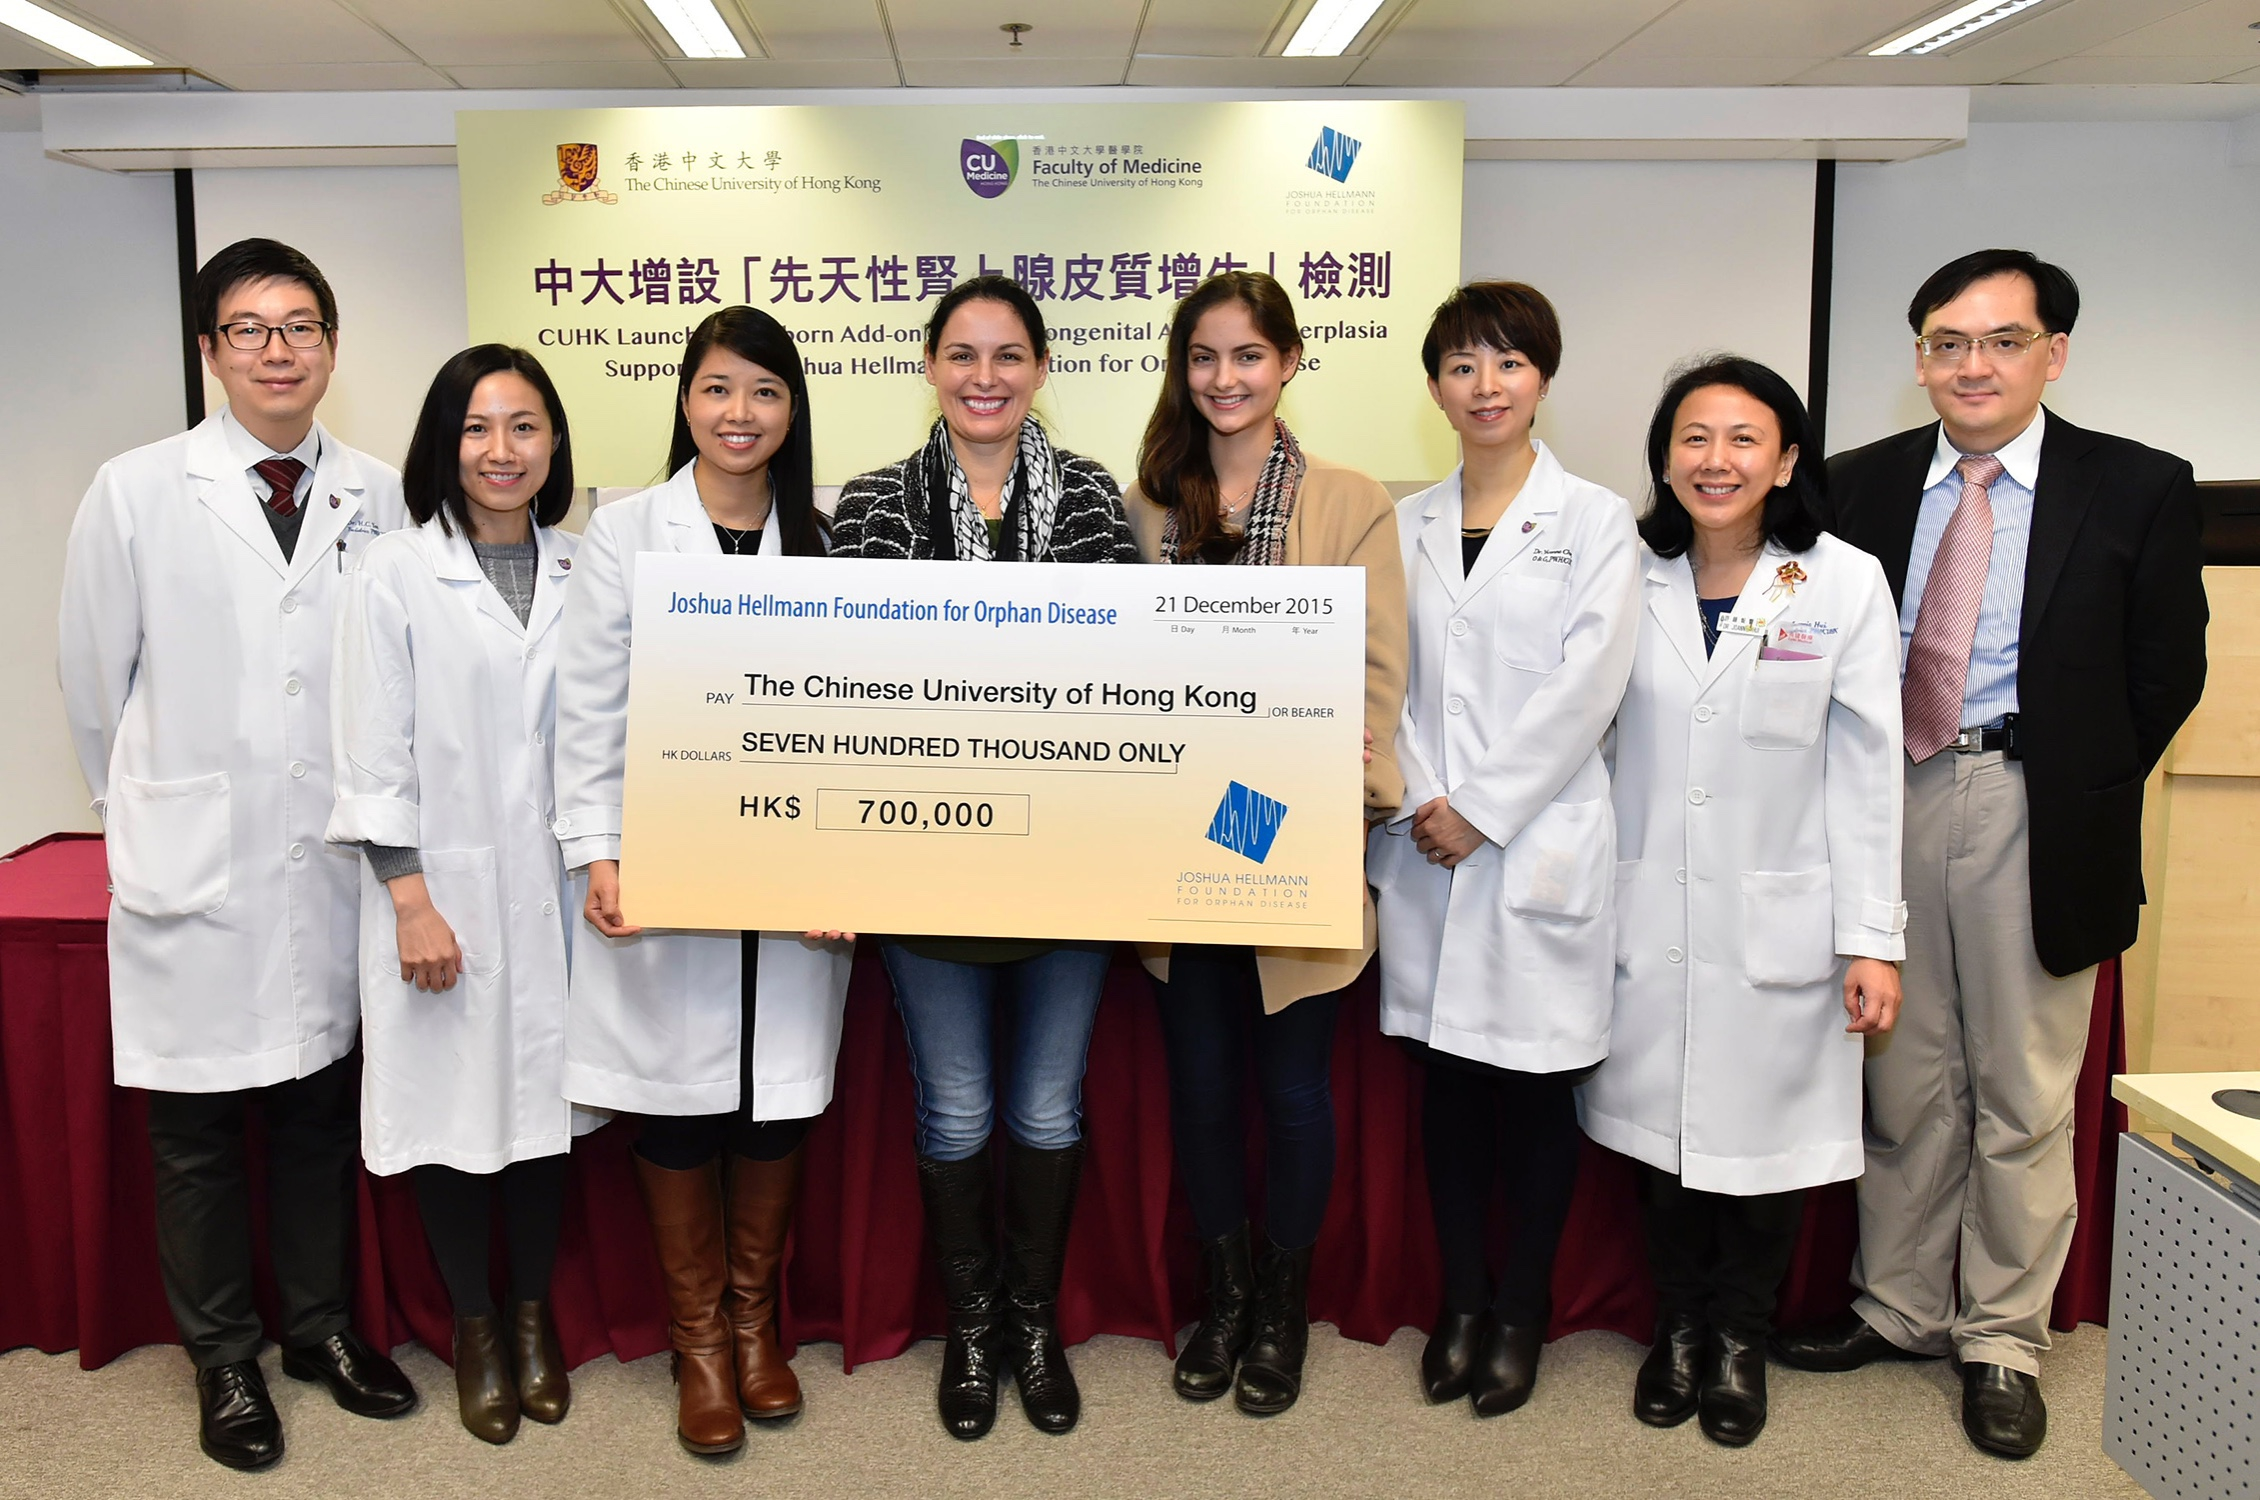 (4th and 5th from left) Mrs Christina STRONG, Founder and Chair of the Joshua Hellmann Foundation (JHF) for Orphan Disease, and her daughter present a cheque to CUHK Medicine.